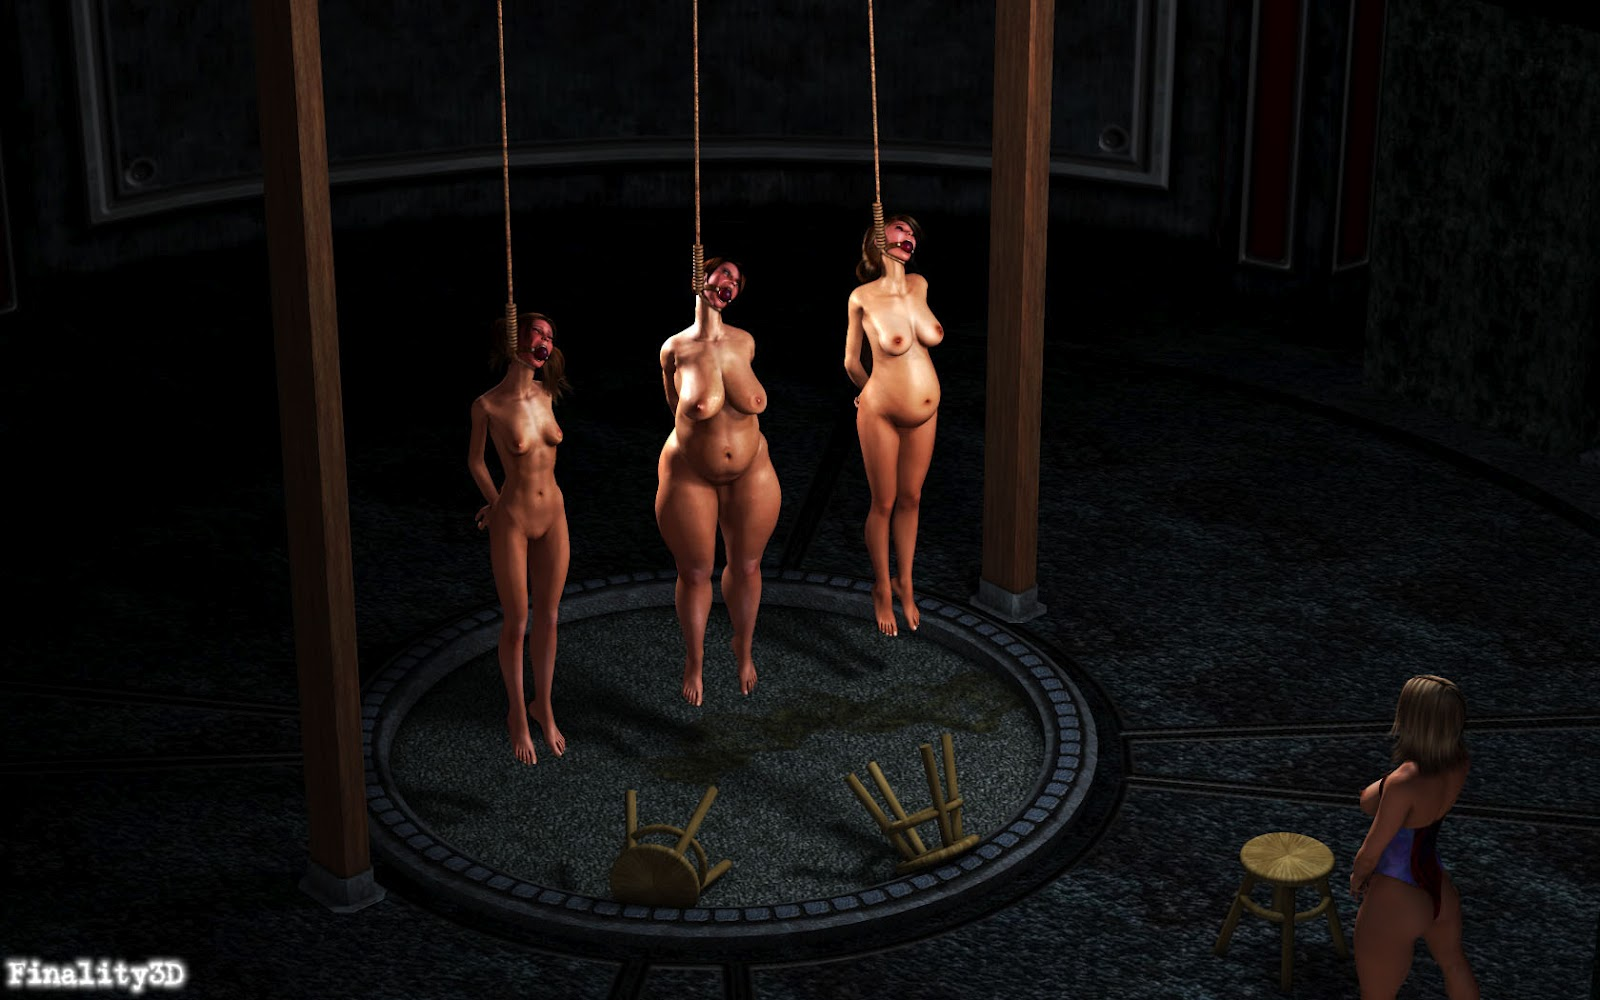 Goddess! Hot bdsm execution hanging was